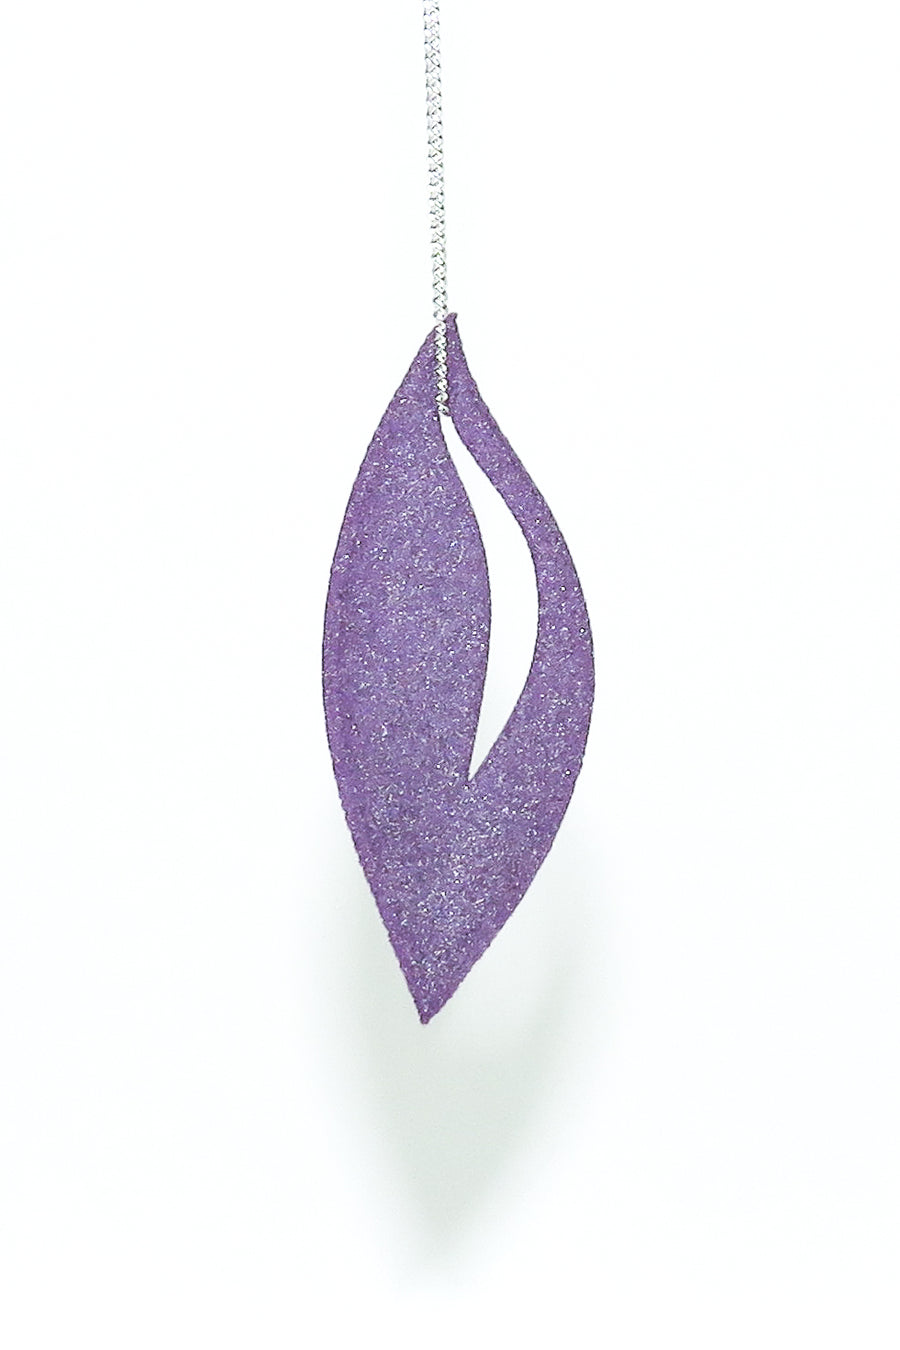 On a Sterling Silver Chain our Olive Pendant 3D Printed in Amethyst Purple